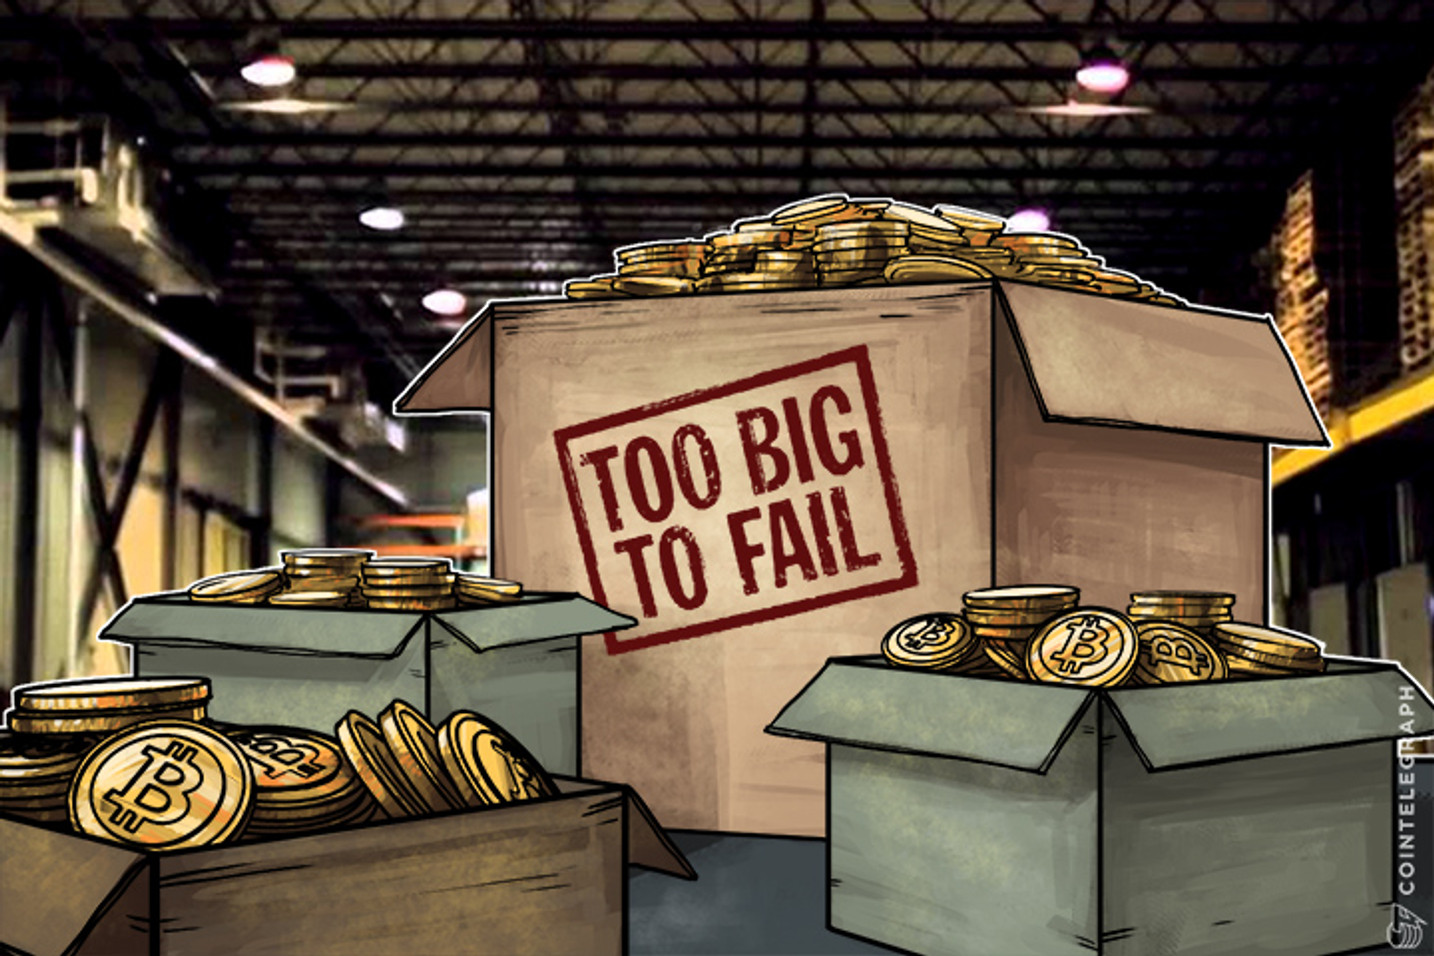 Too Big to Fail? Not in the Blockchain World